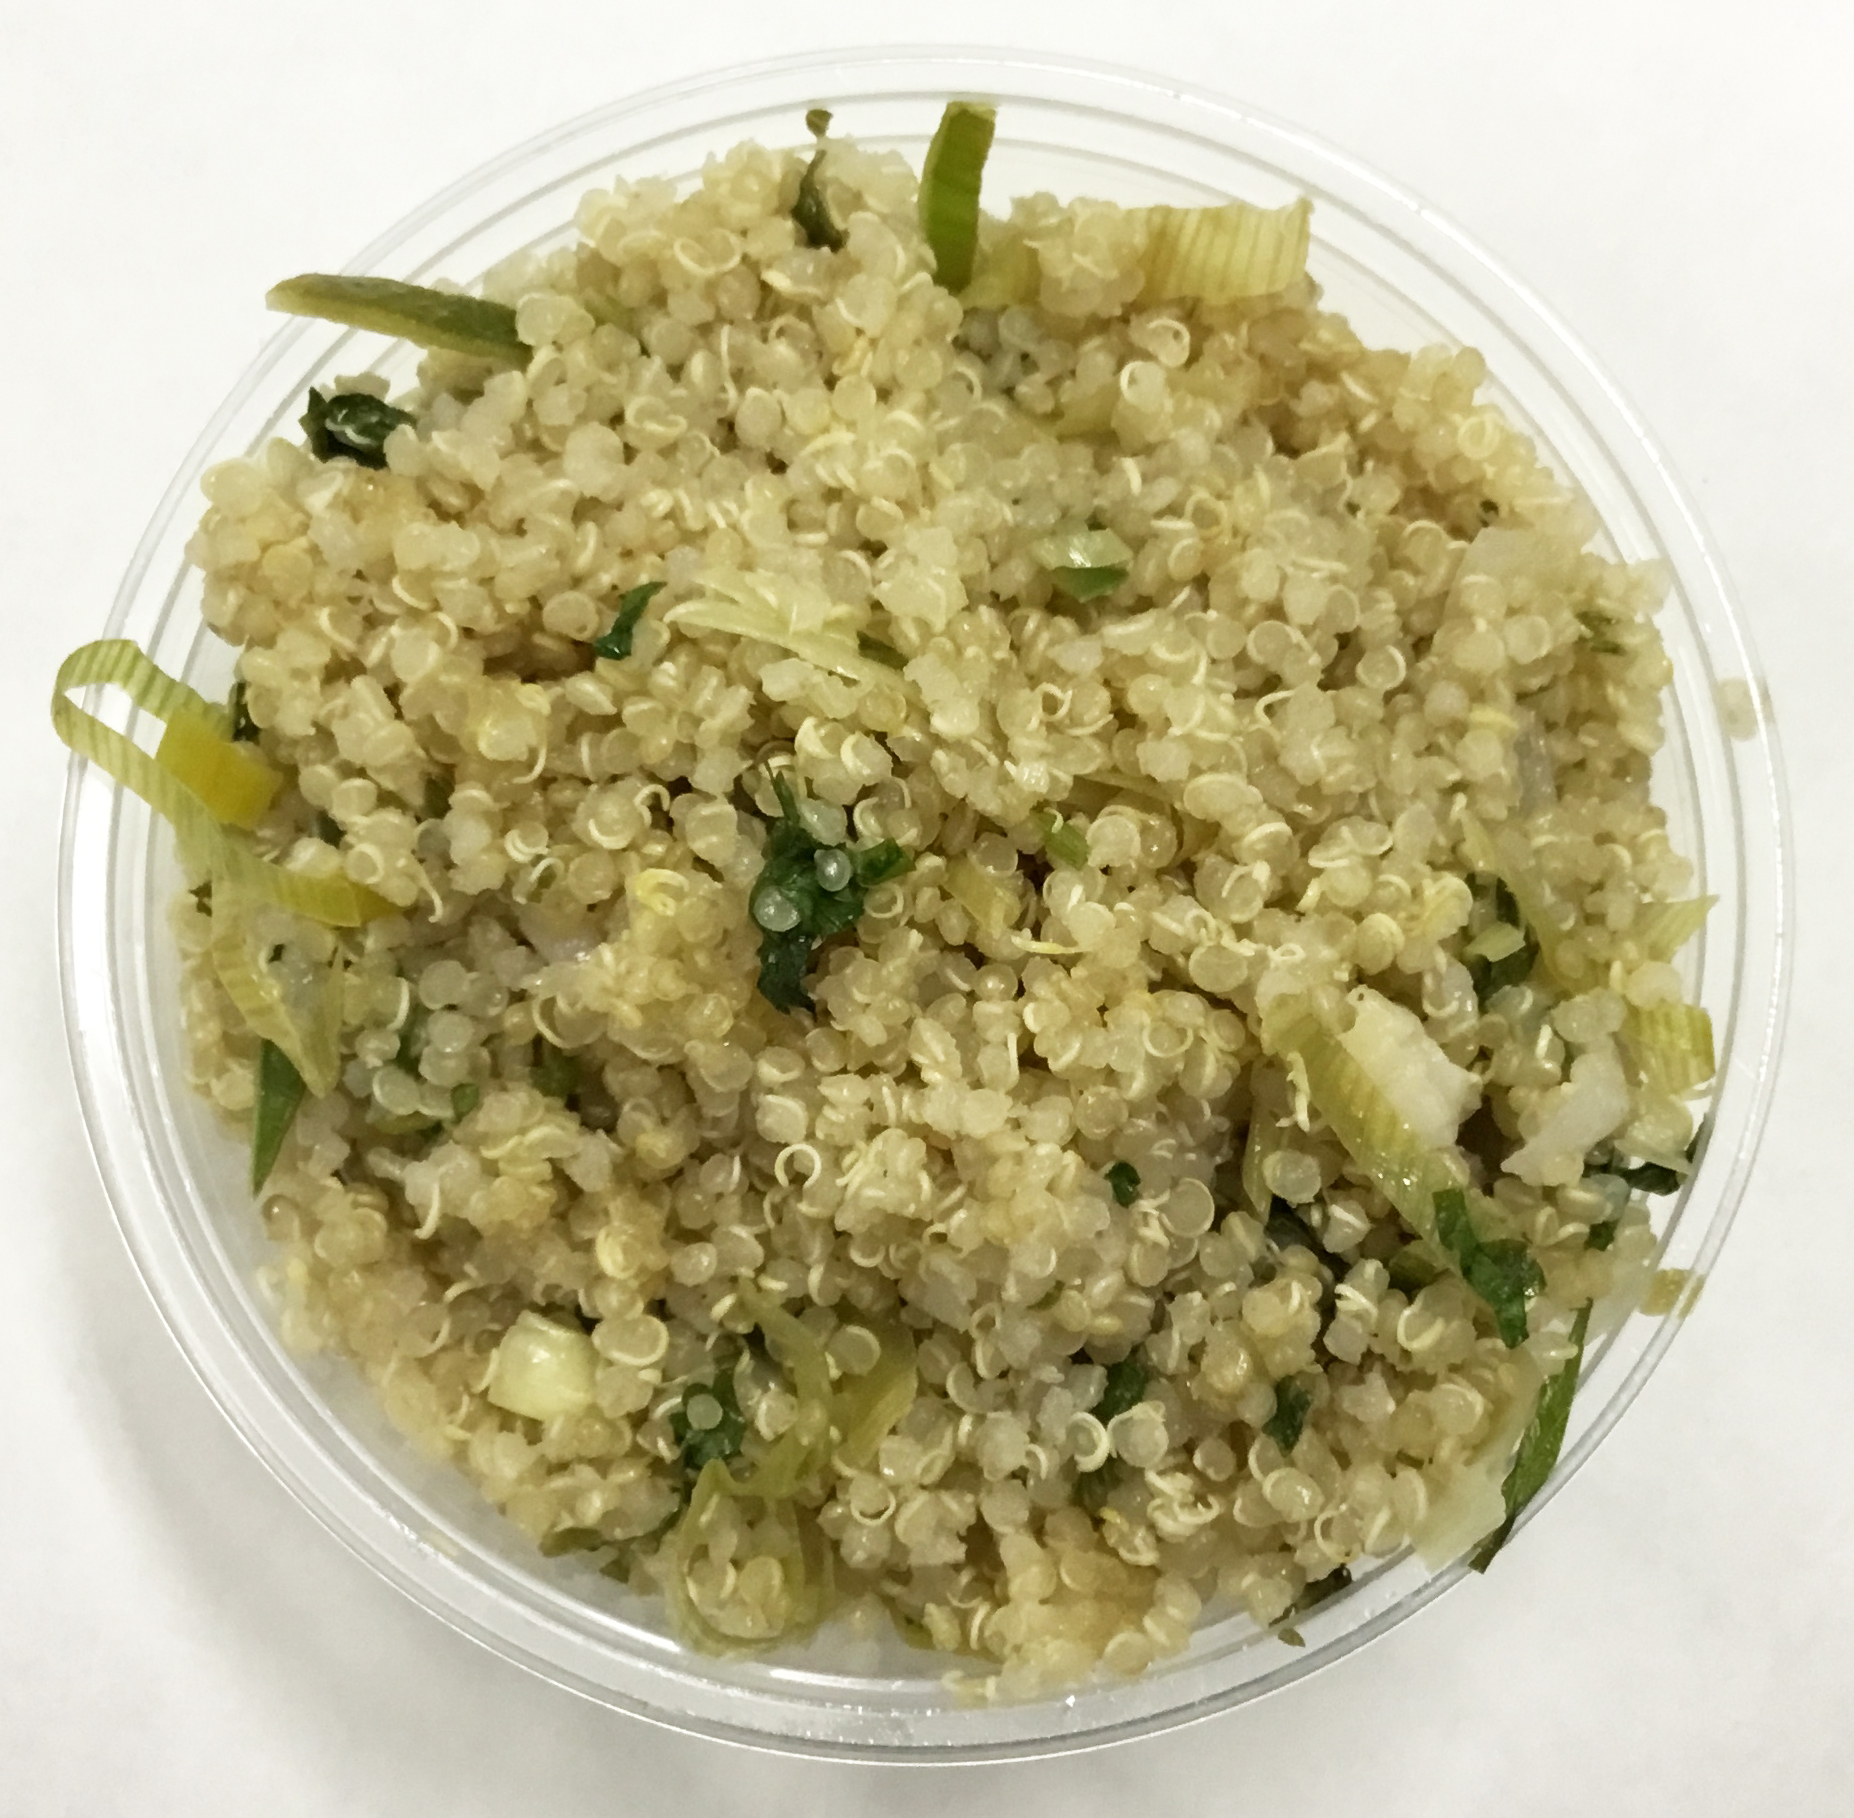 Quinoa with leeks, cilantro, umbeboshi vinegar and toasted sesame oil.